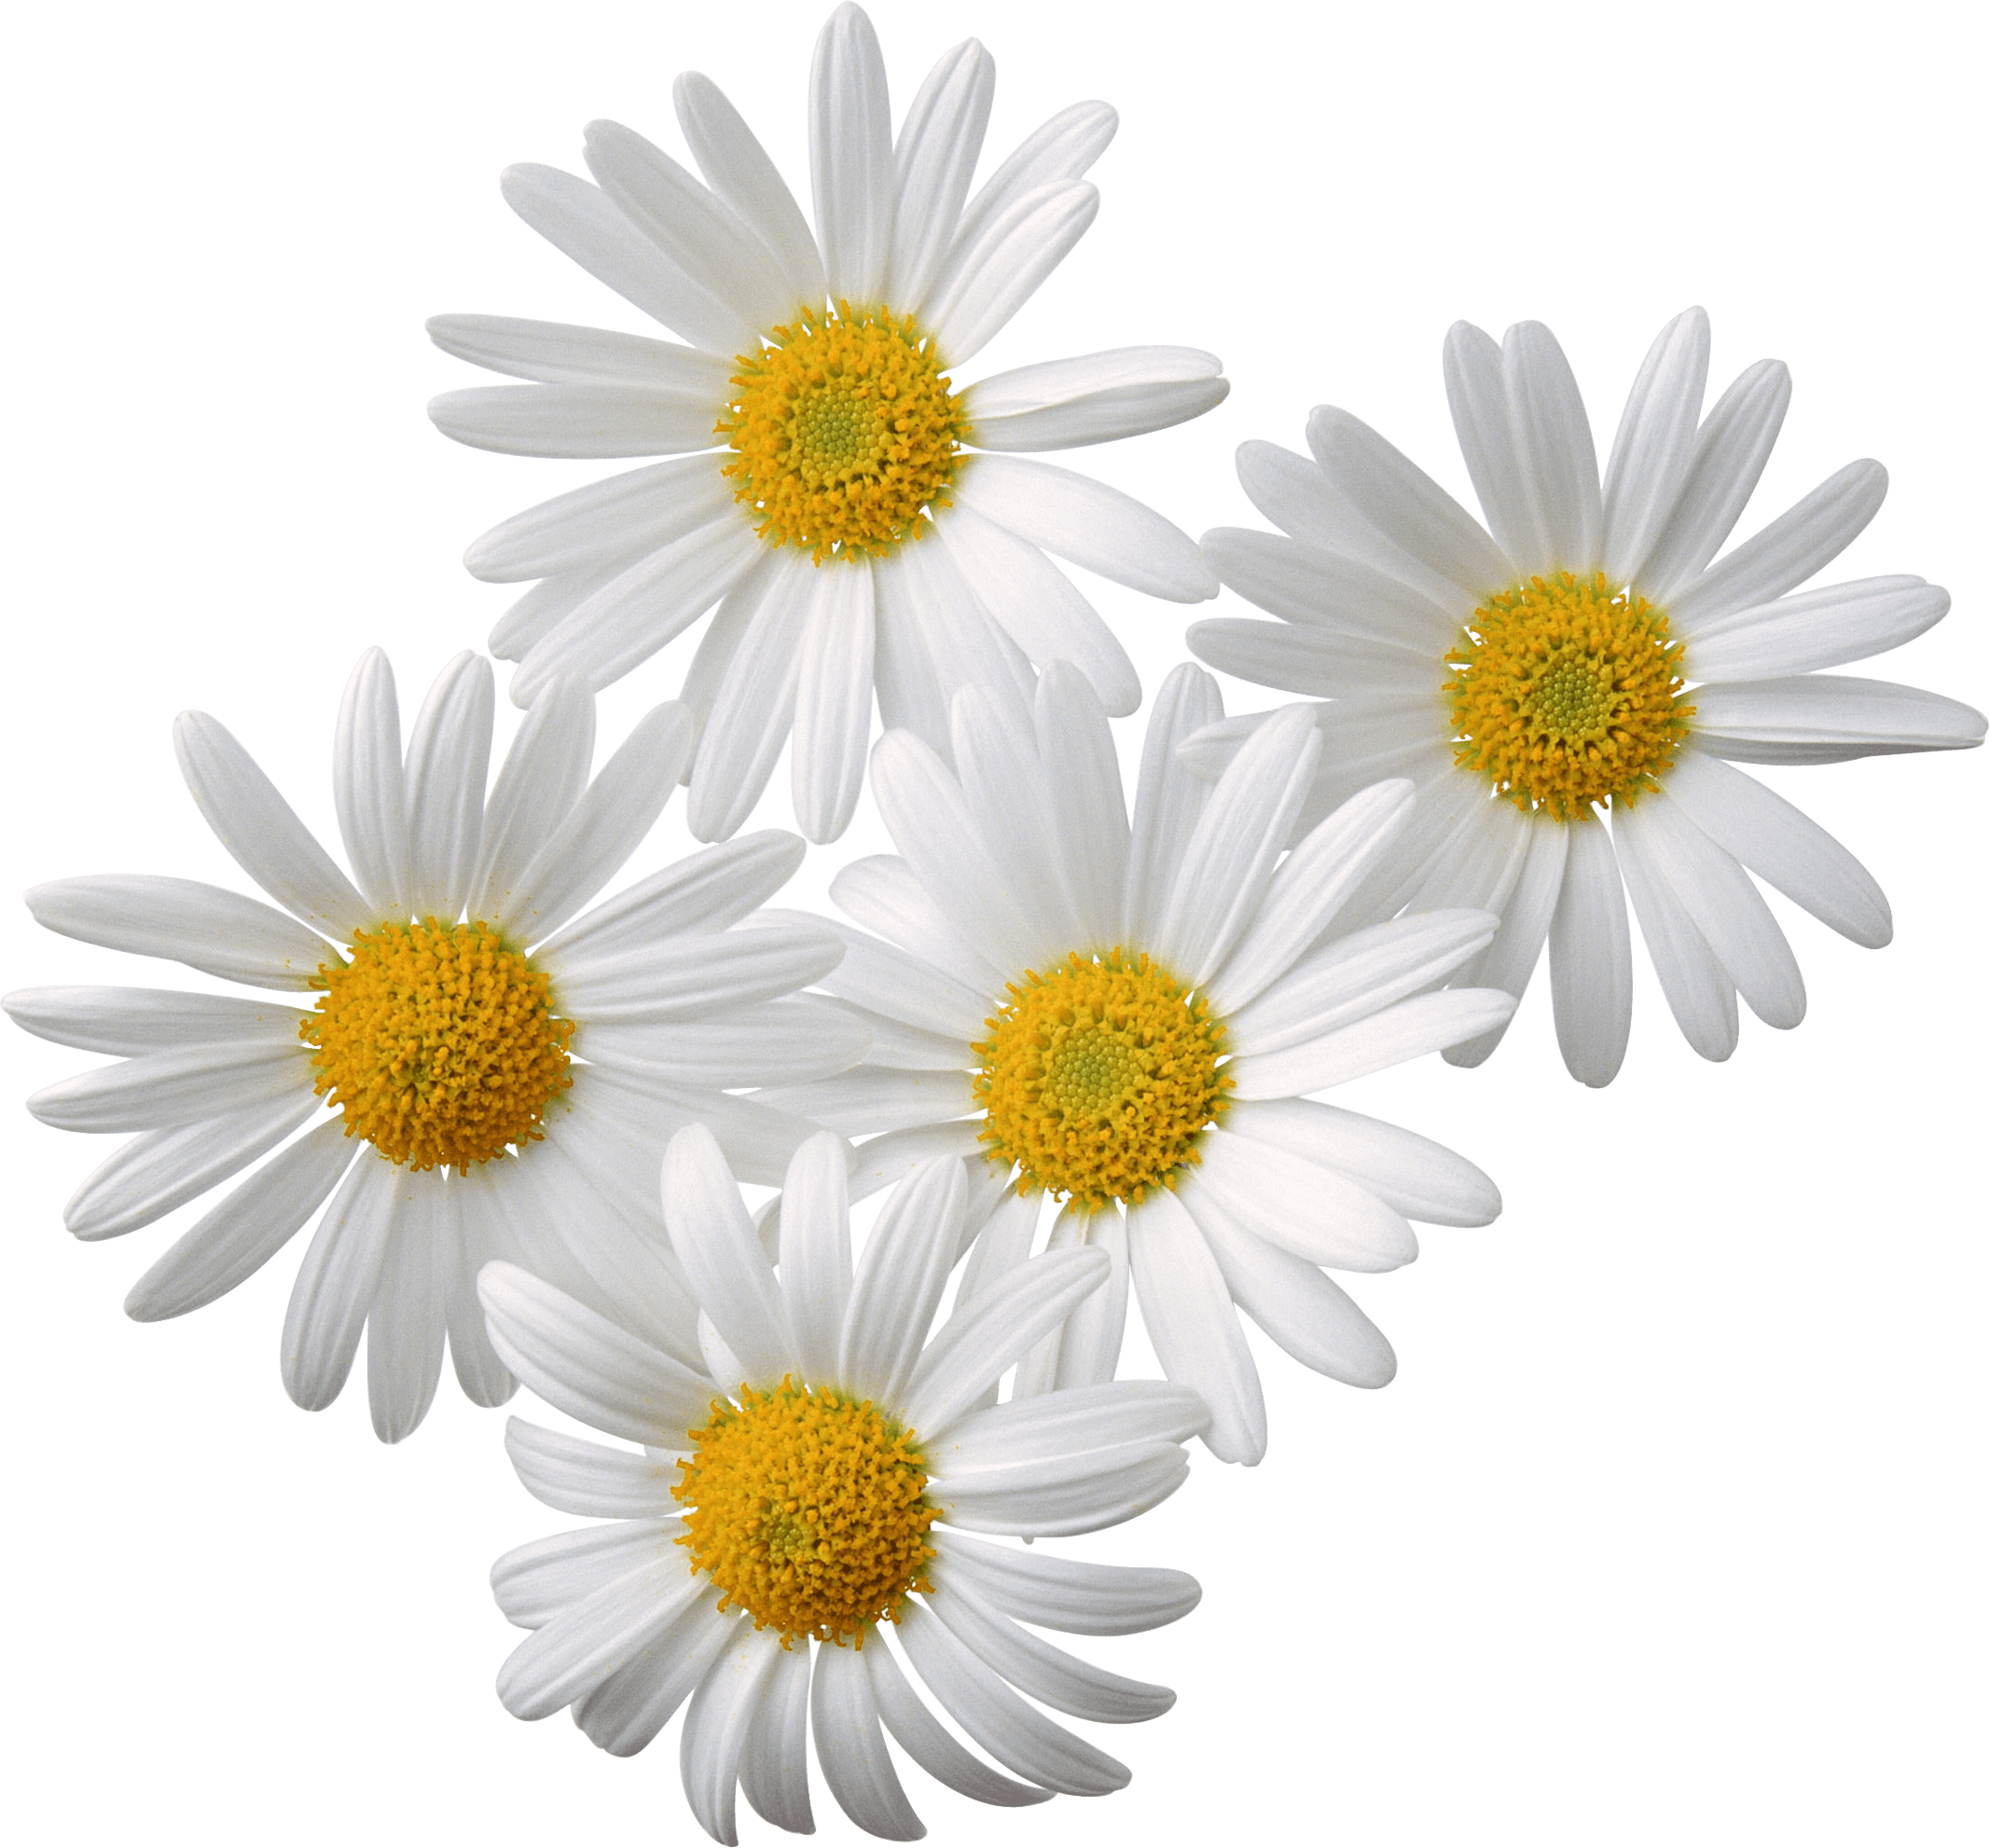 Daisy flower png. Flowers white yellow transparent